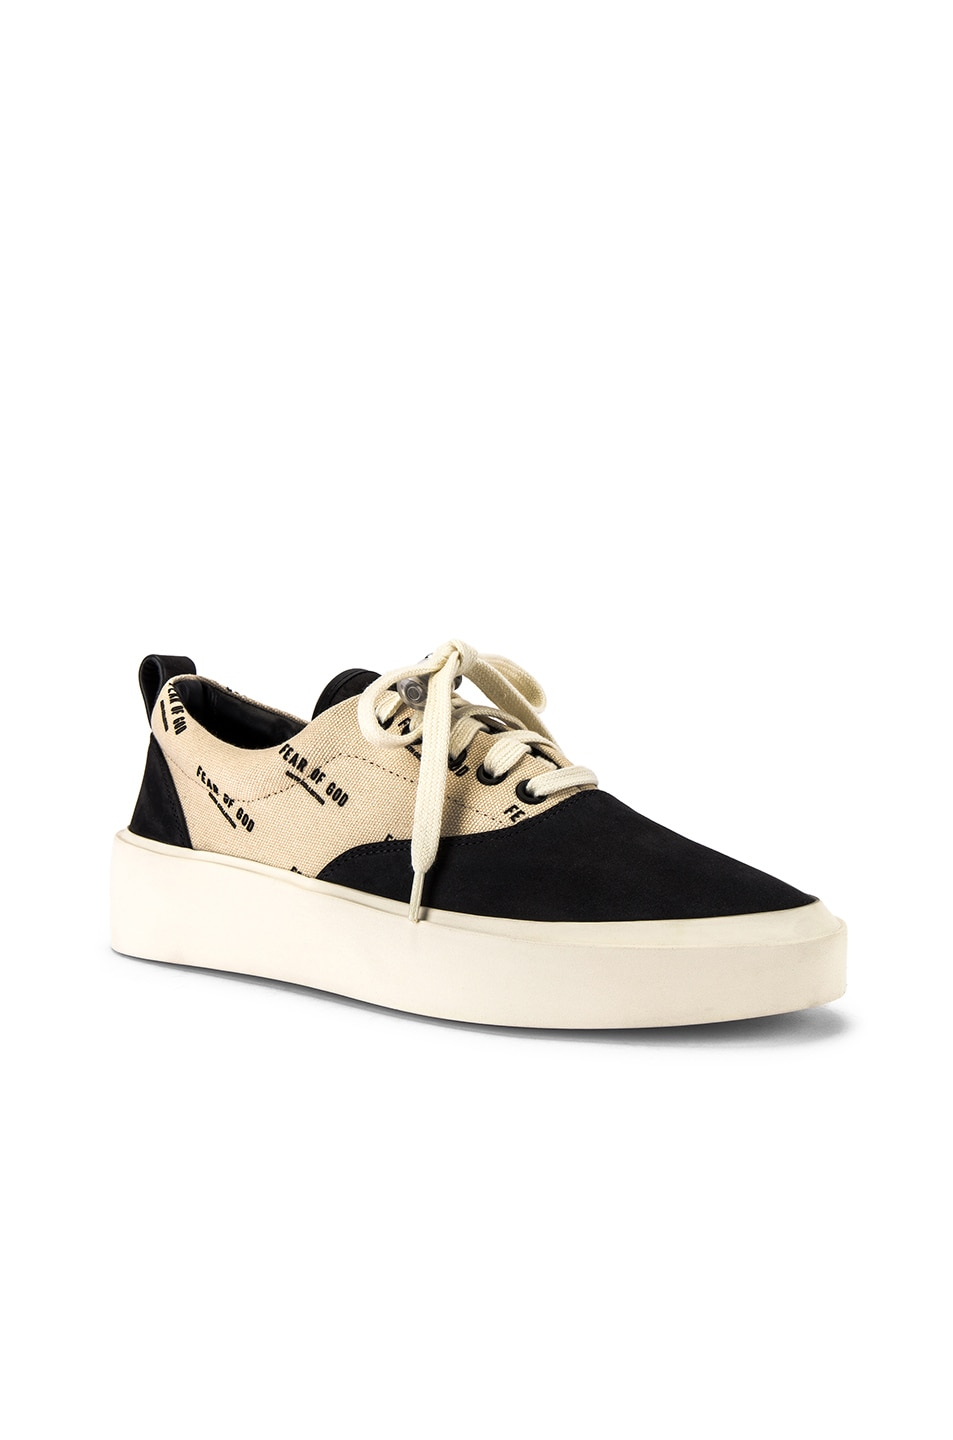 Image 1 of Fear of God 101 Lace Up Sneaker in Black & Creme Logo Print